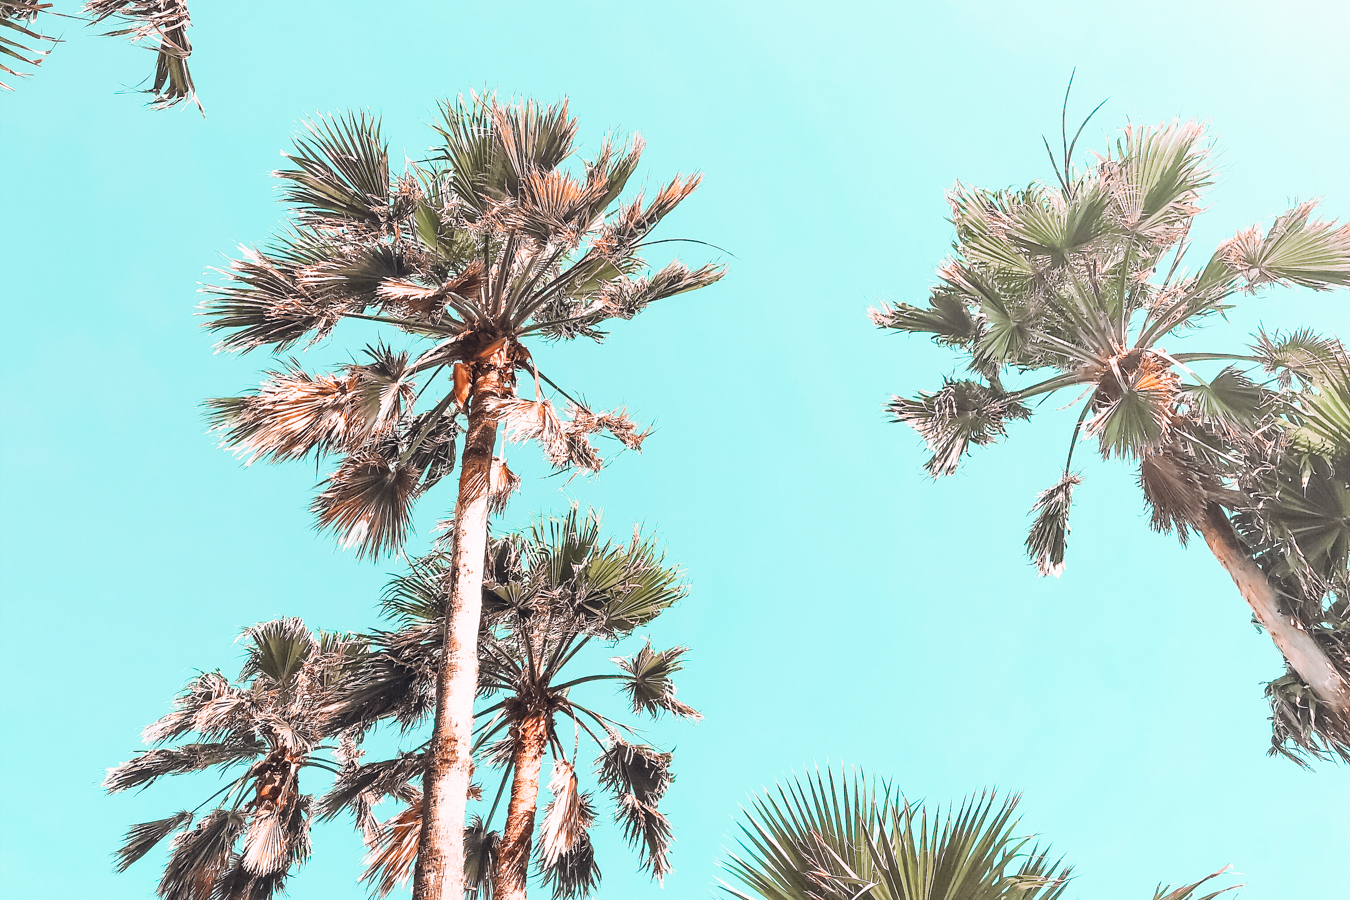 Palm trees in South Padre Island